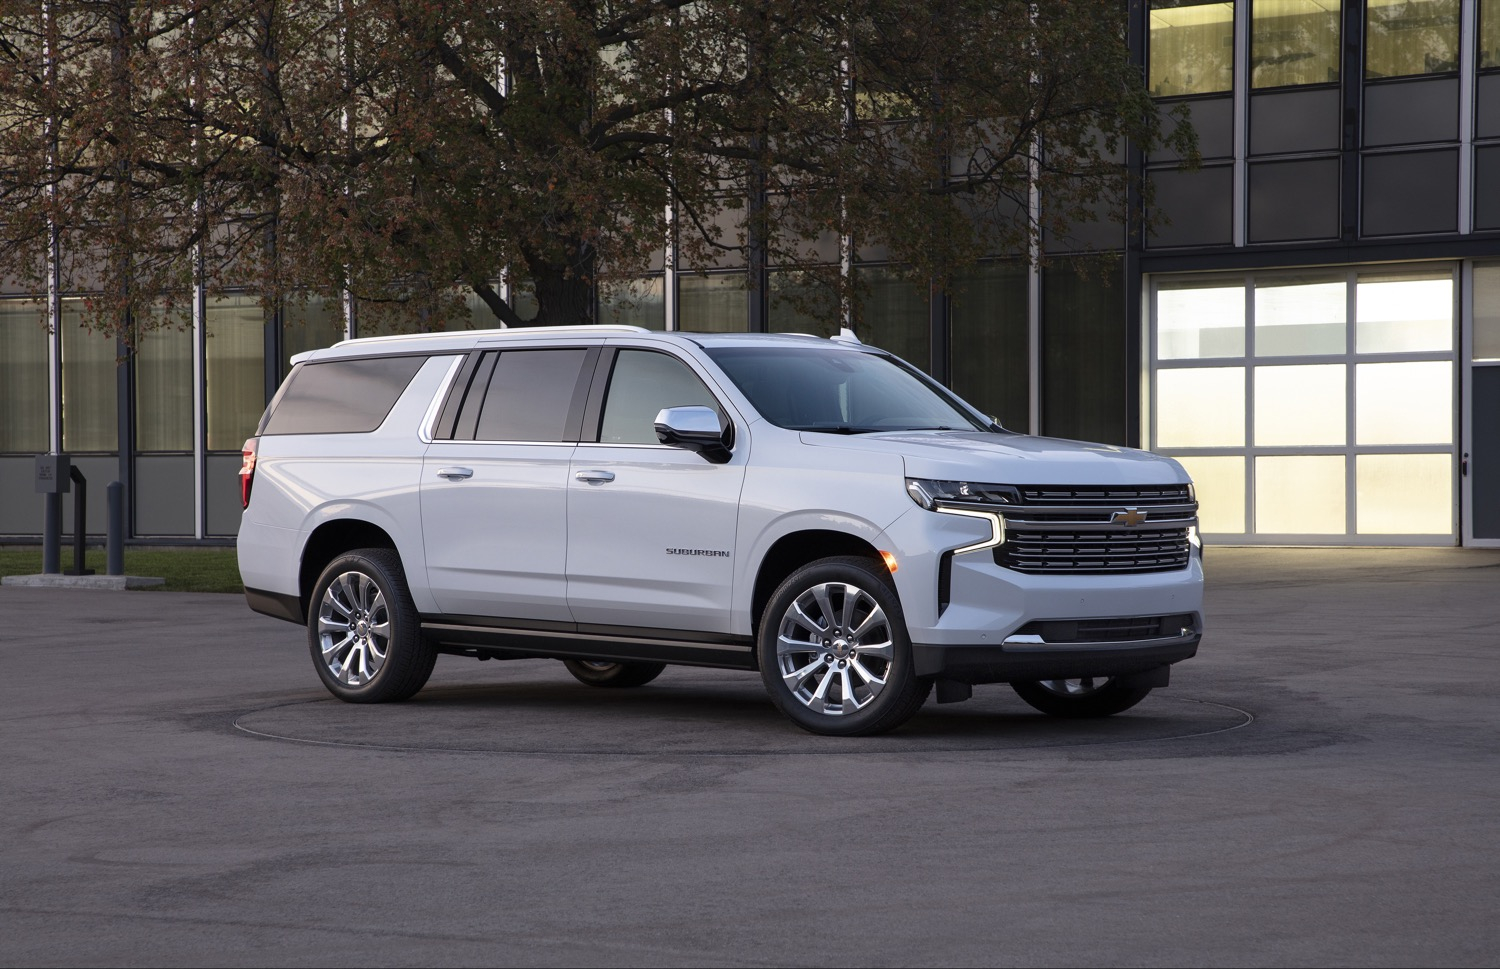 2021 General Motors Full-Size Suvs Get New Towing Specs | Gm Can A New 2021 Buick Enclave Be Flat Towed